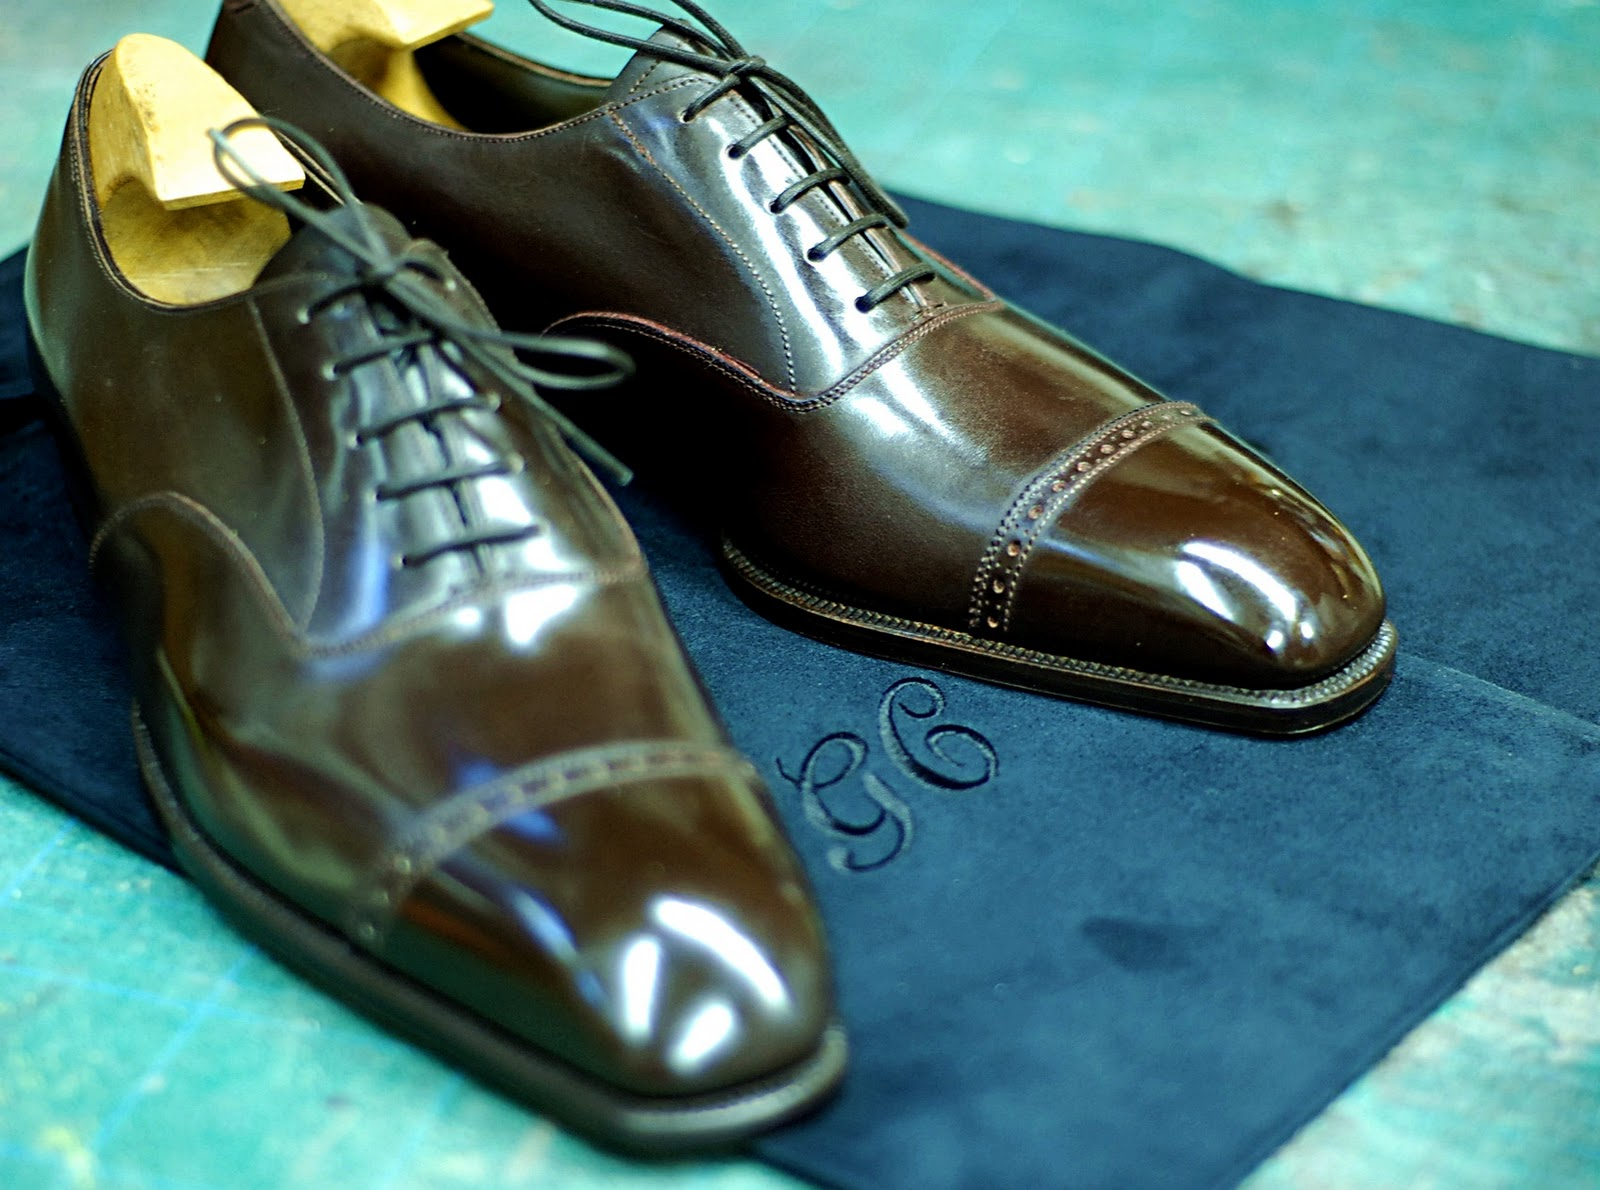 Cleverley Shoes Uk